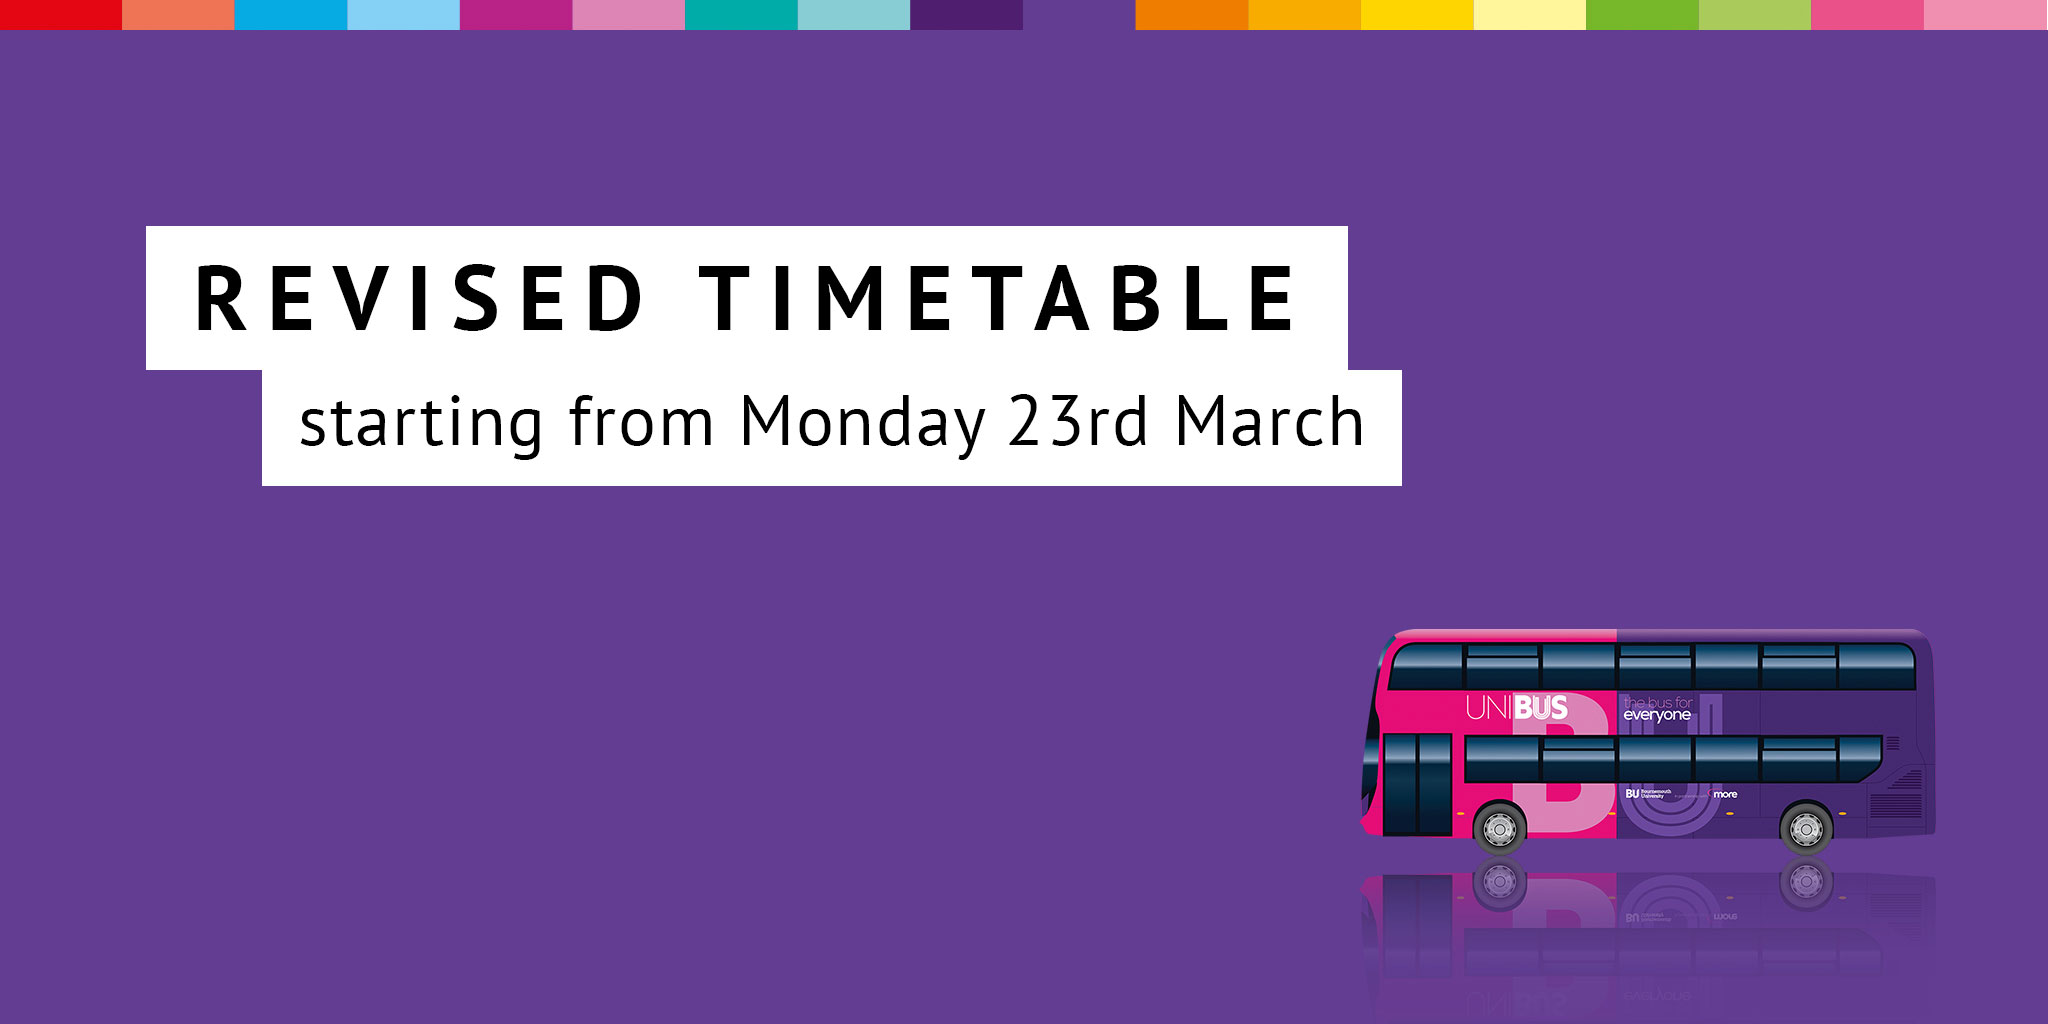 Image reading 'Revised timetable starting from Monday 23rd March'